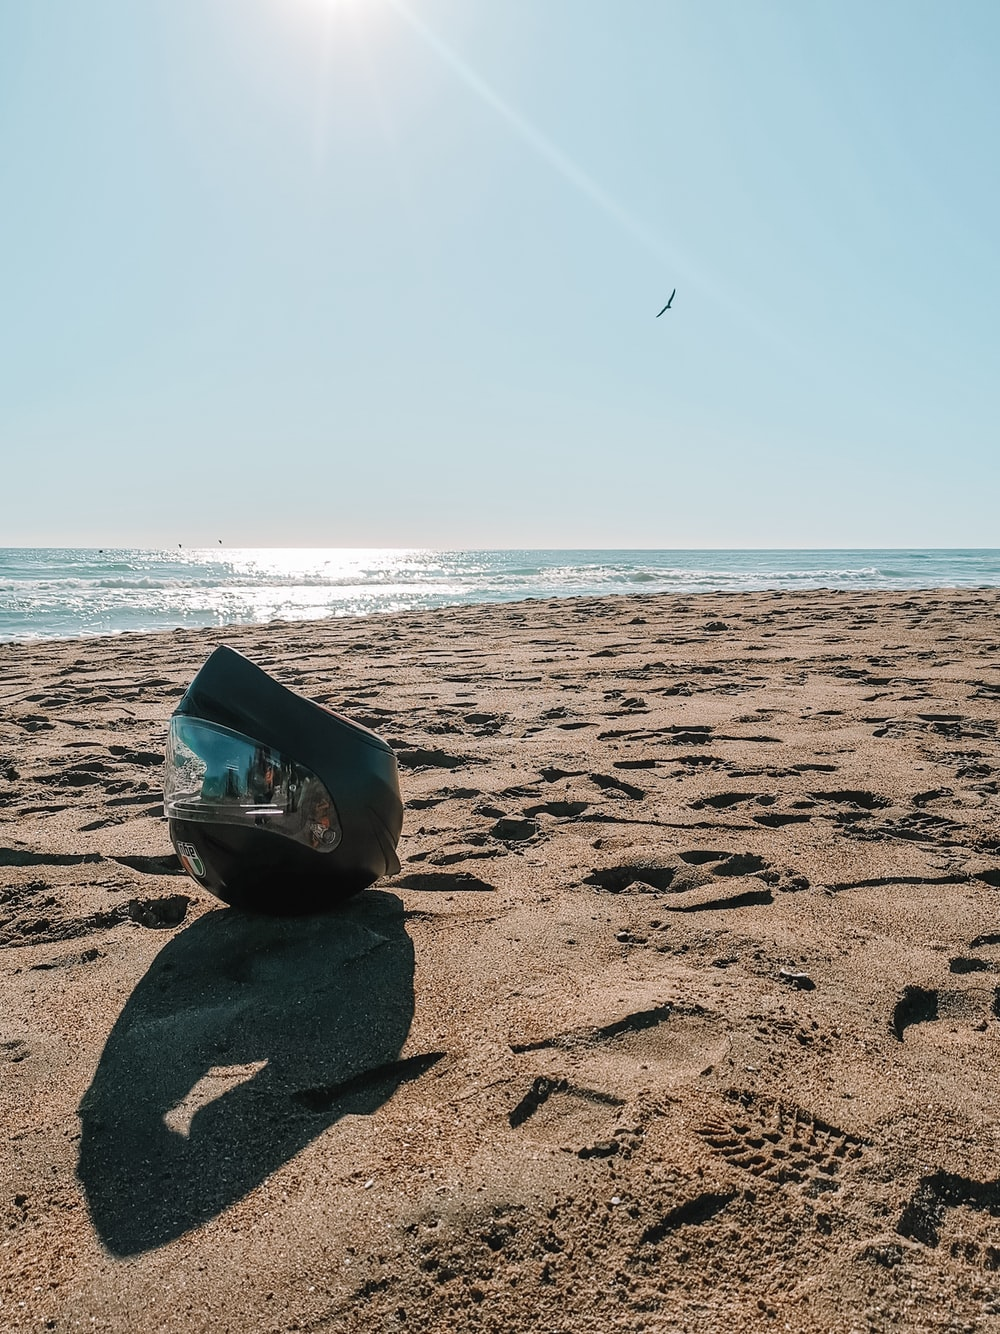 blue and white inflatable ring on brown sand near sea during daytime